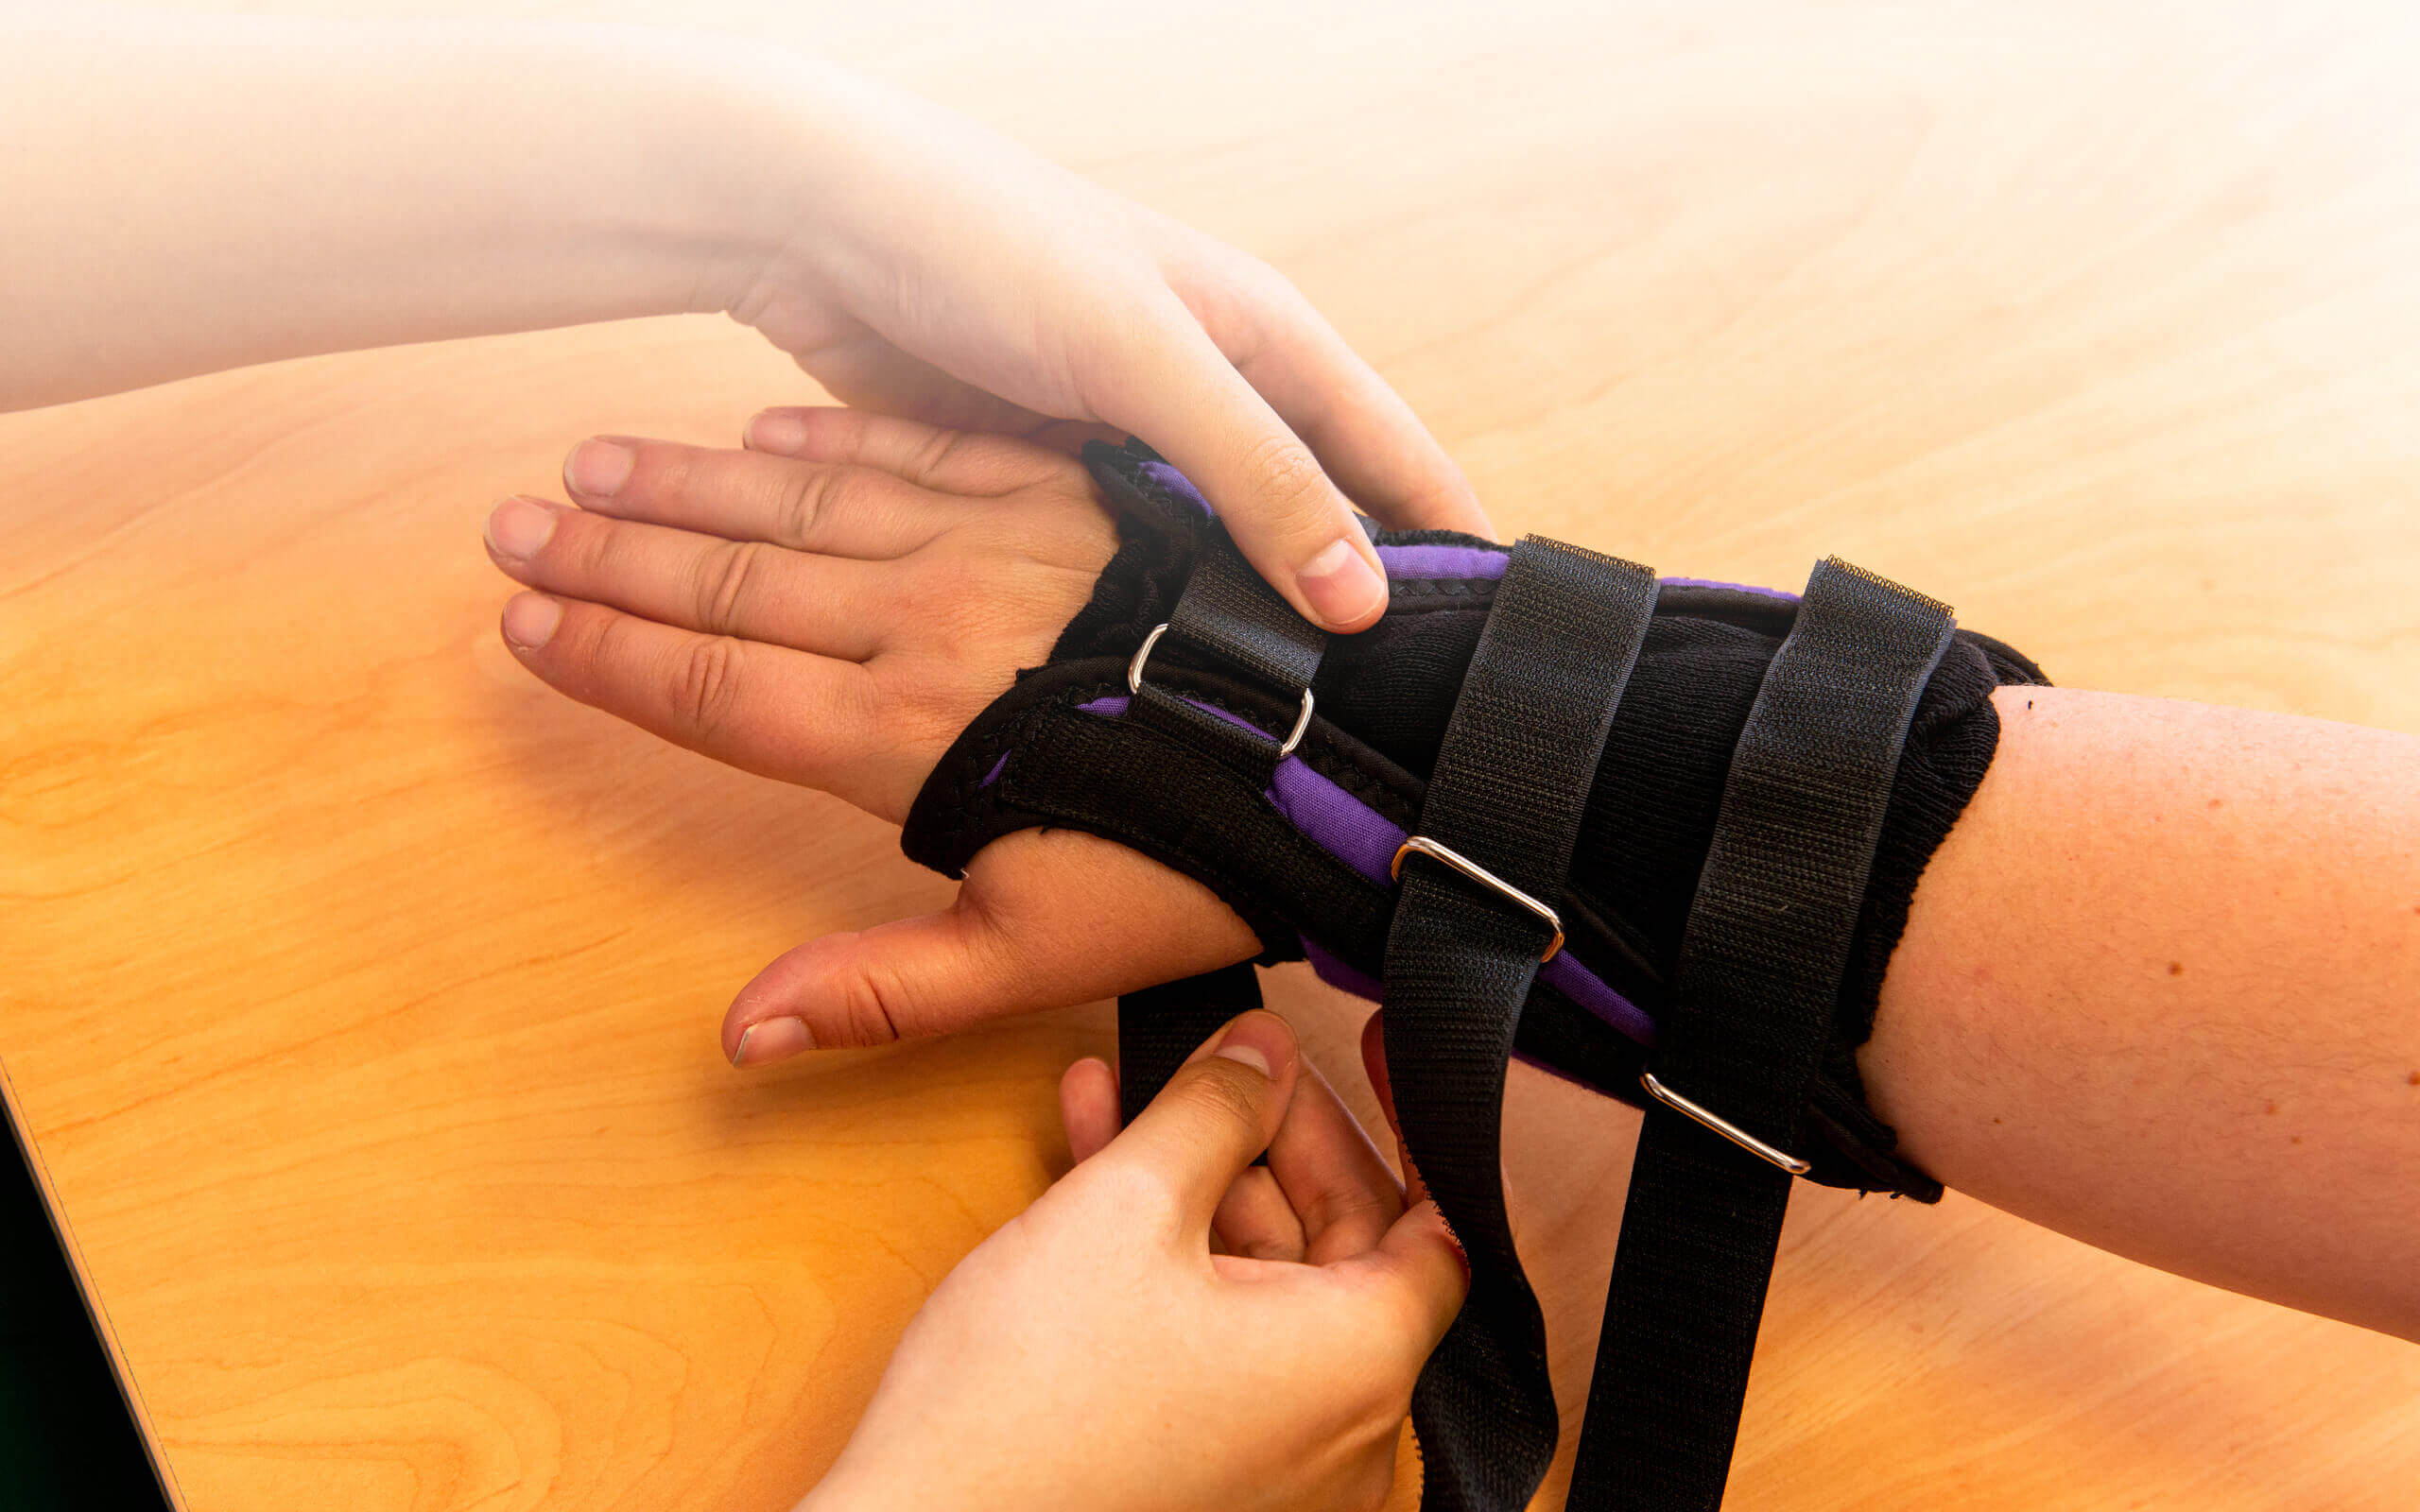 a patient has strapping put on their wrist